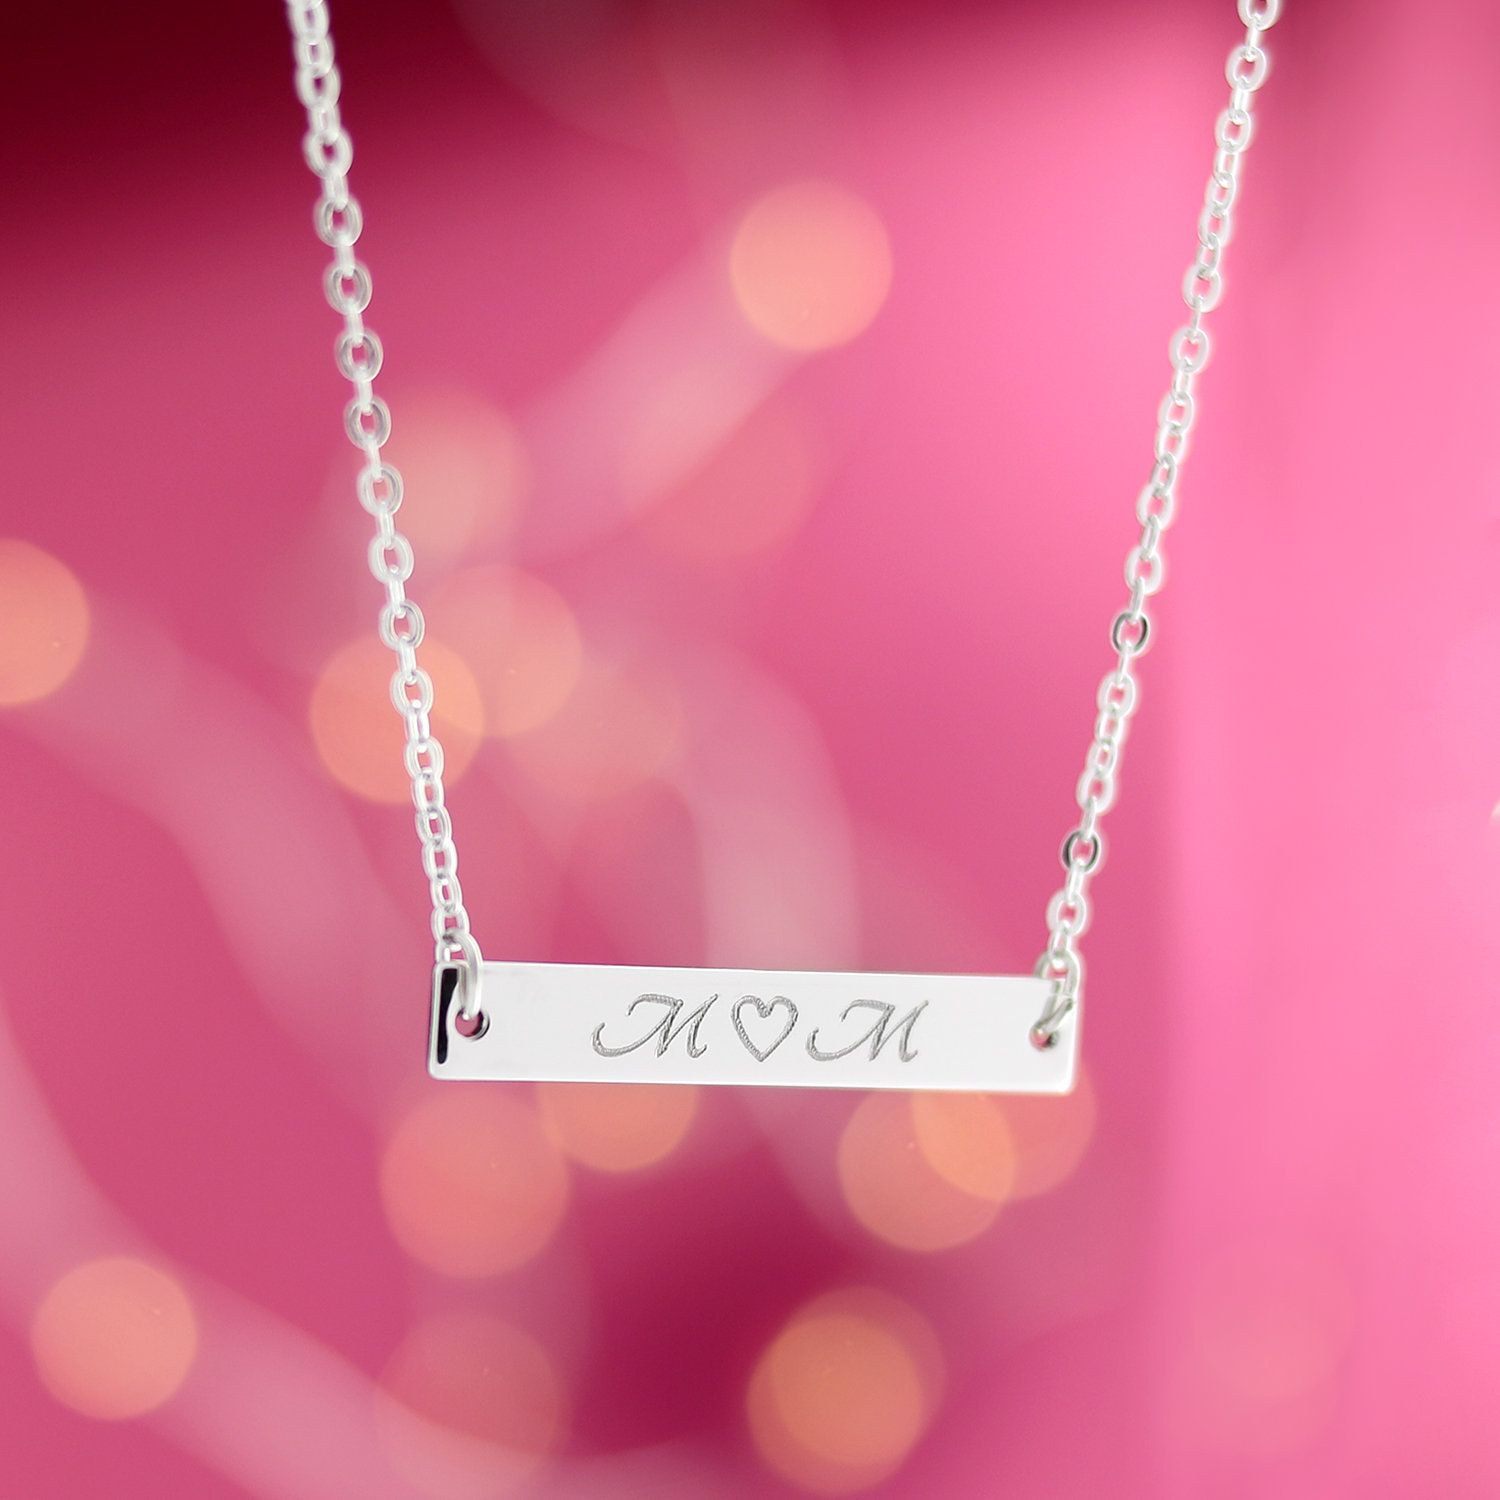 Hand Stamped Heart Charm Initial Necklace16k Gold Silver Rose Gold PlatedGift for Birthday Wedding Bridesmaid Mothers day Mother Daughter